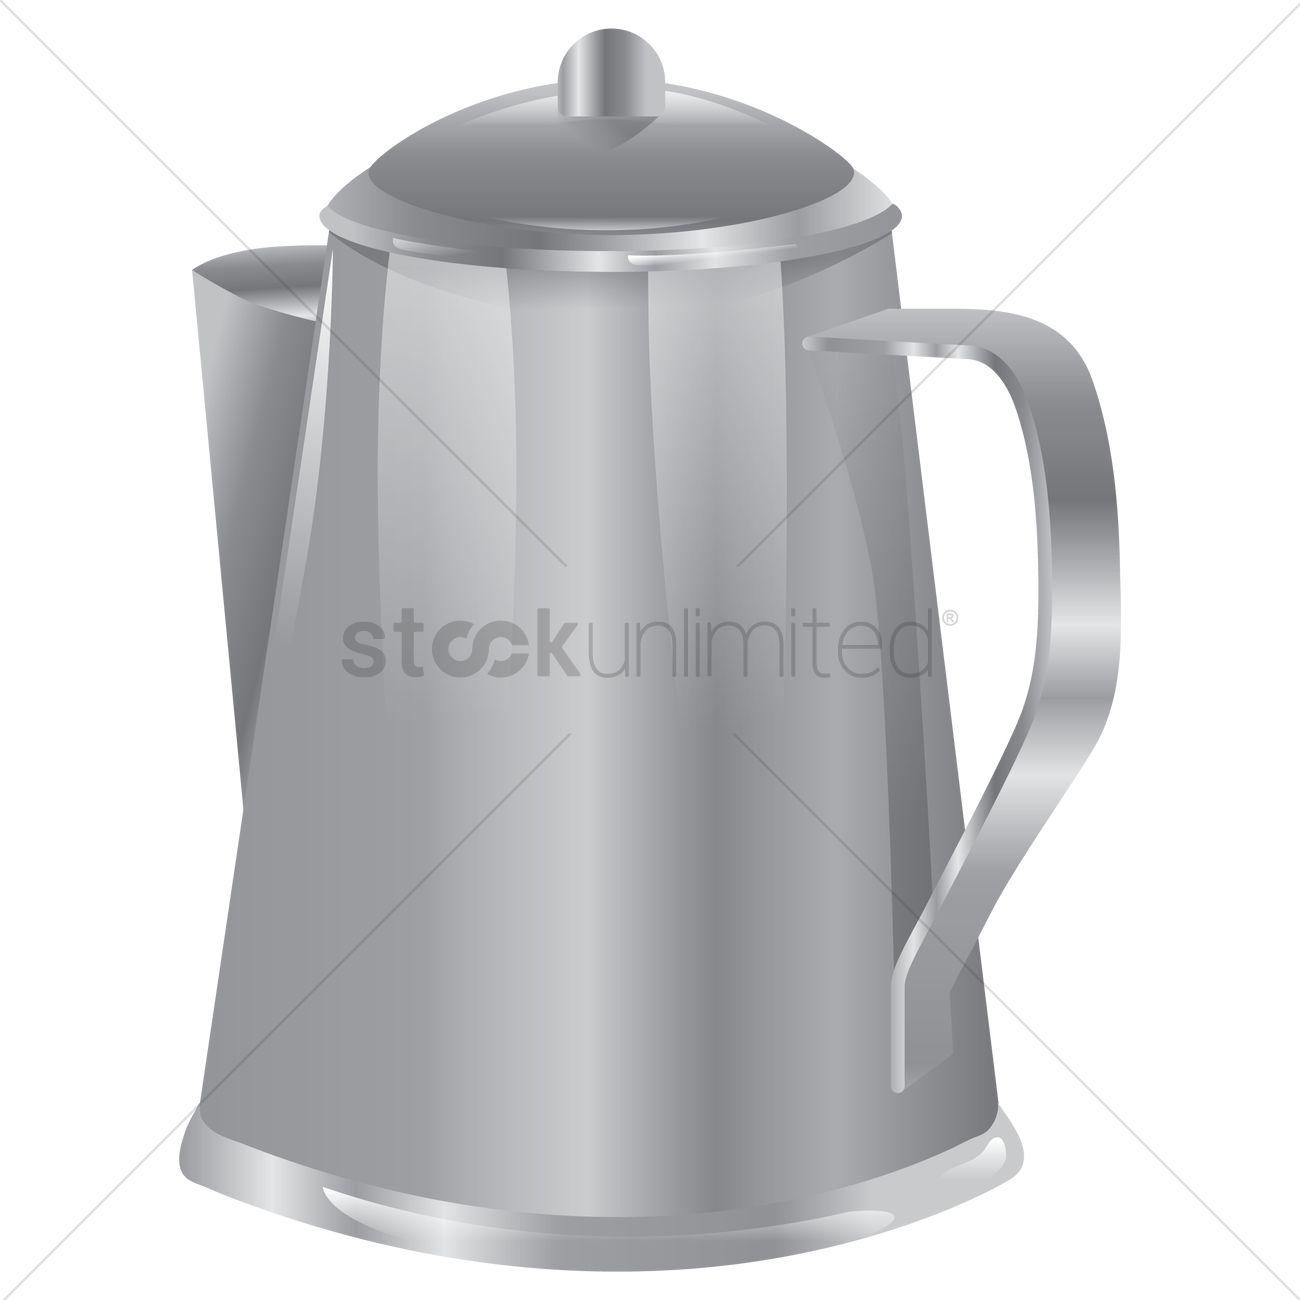 Seemly Coffee Pot Vector Graphic Coffee Pot Vector Image Stockunlimited Camping Coffee Percolator Australia Camping Coffee Percolator Reviews curbed Camping Coffee Percolator